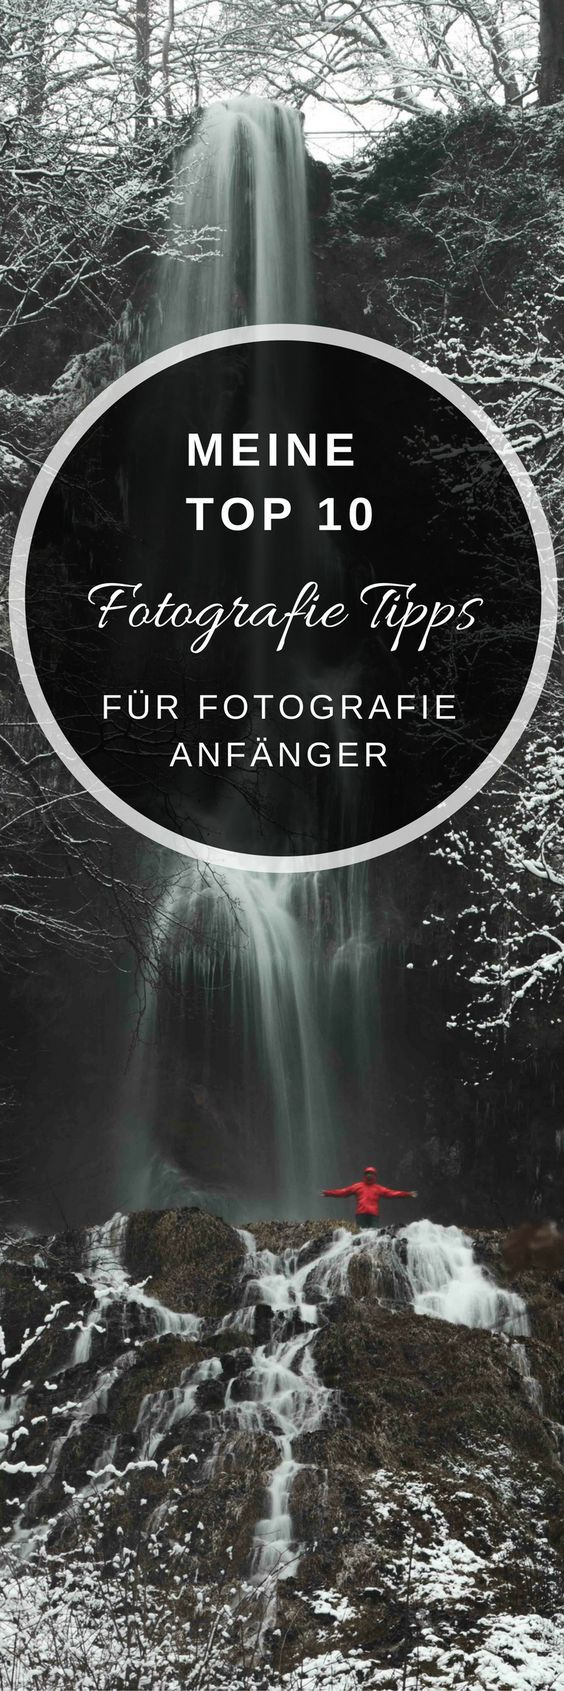 758 best Fotografie images on Pinterest